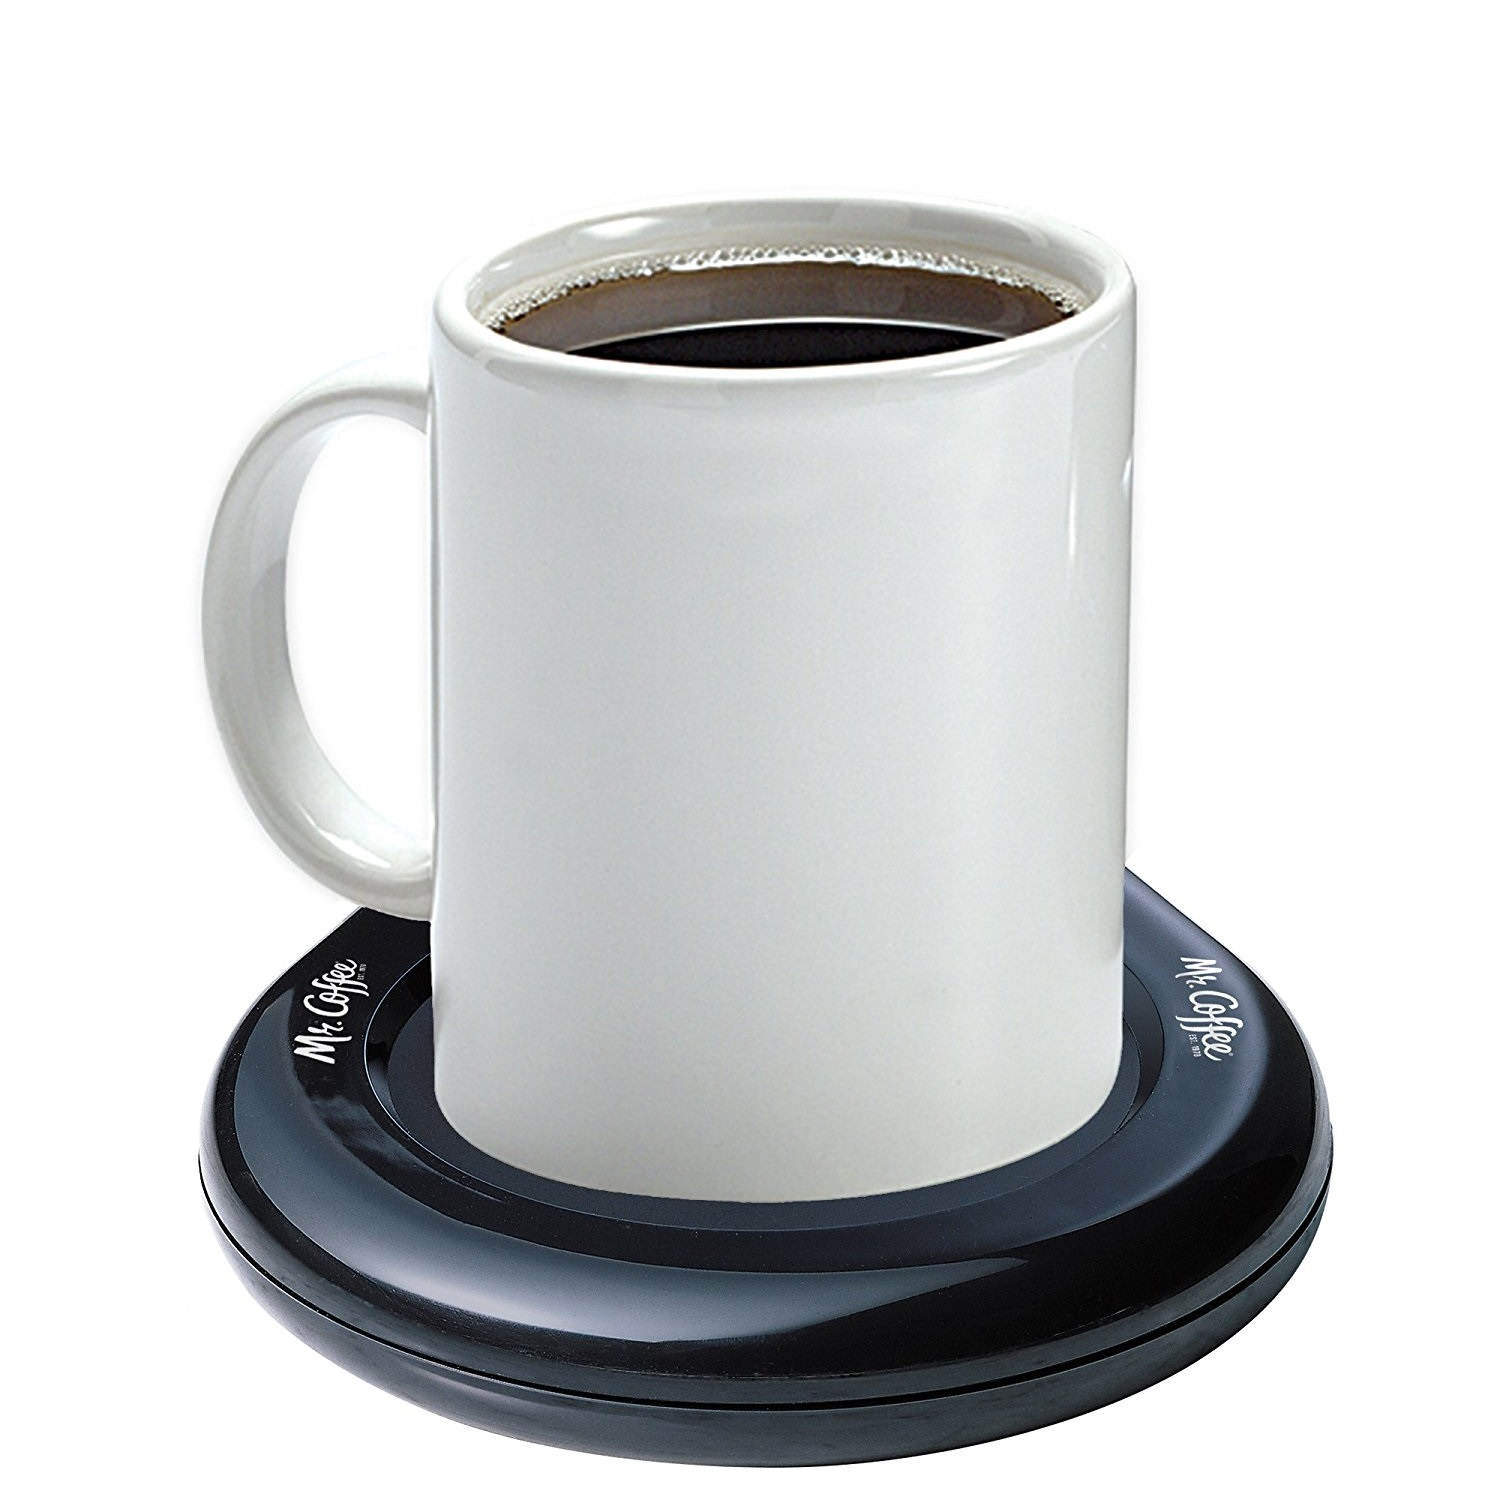 Mr. Coffee Beverage/Mug Warmer